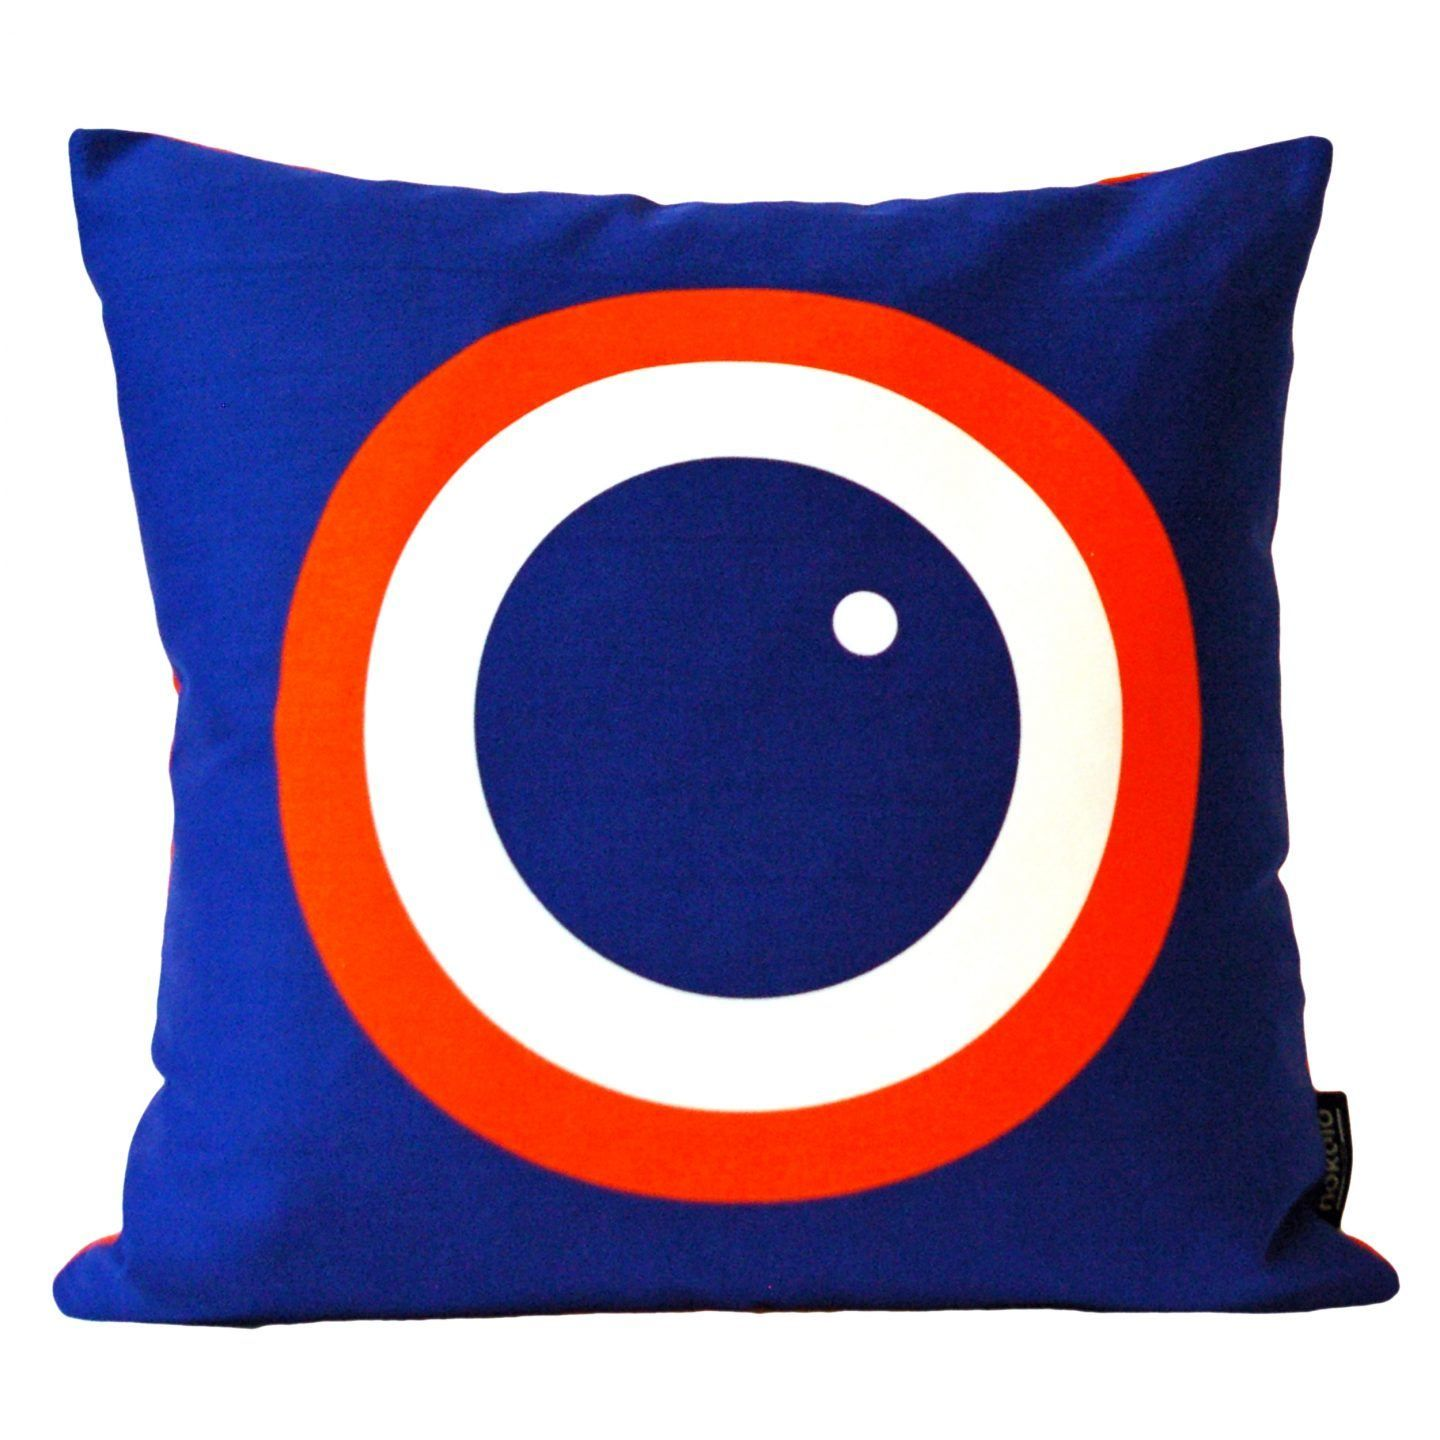 English Breakfast Printed Cushion  Blueberry is part of Scandinavian Home Accessories Pillows - English Breakfast Printed Cushion is screen printed and handmade in England  It's made from100% cotton drill  Sizes 40 x 40 cm  Please note we only ship cushions with inserts within the UK  Sorry for the inconvenience